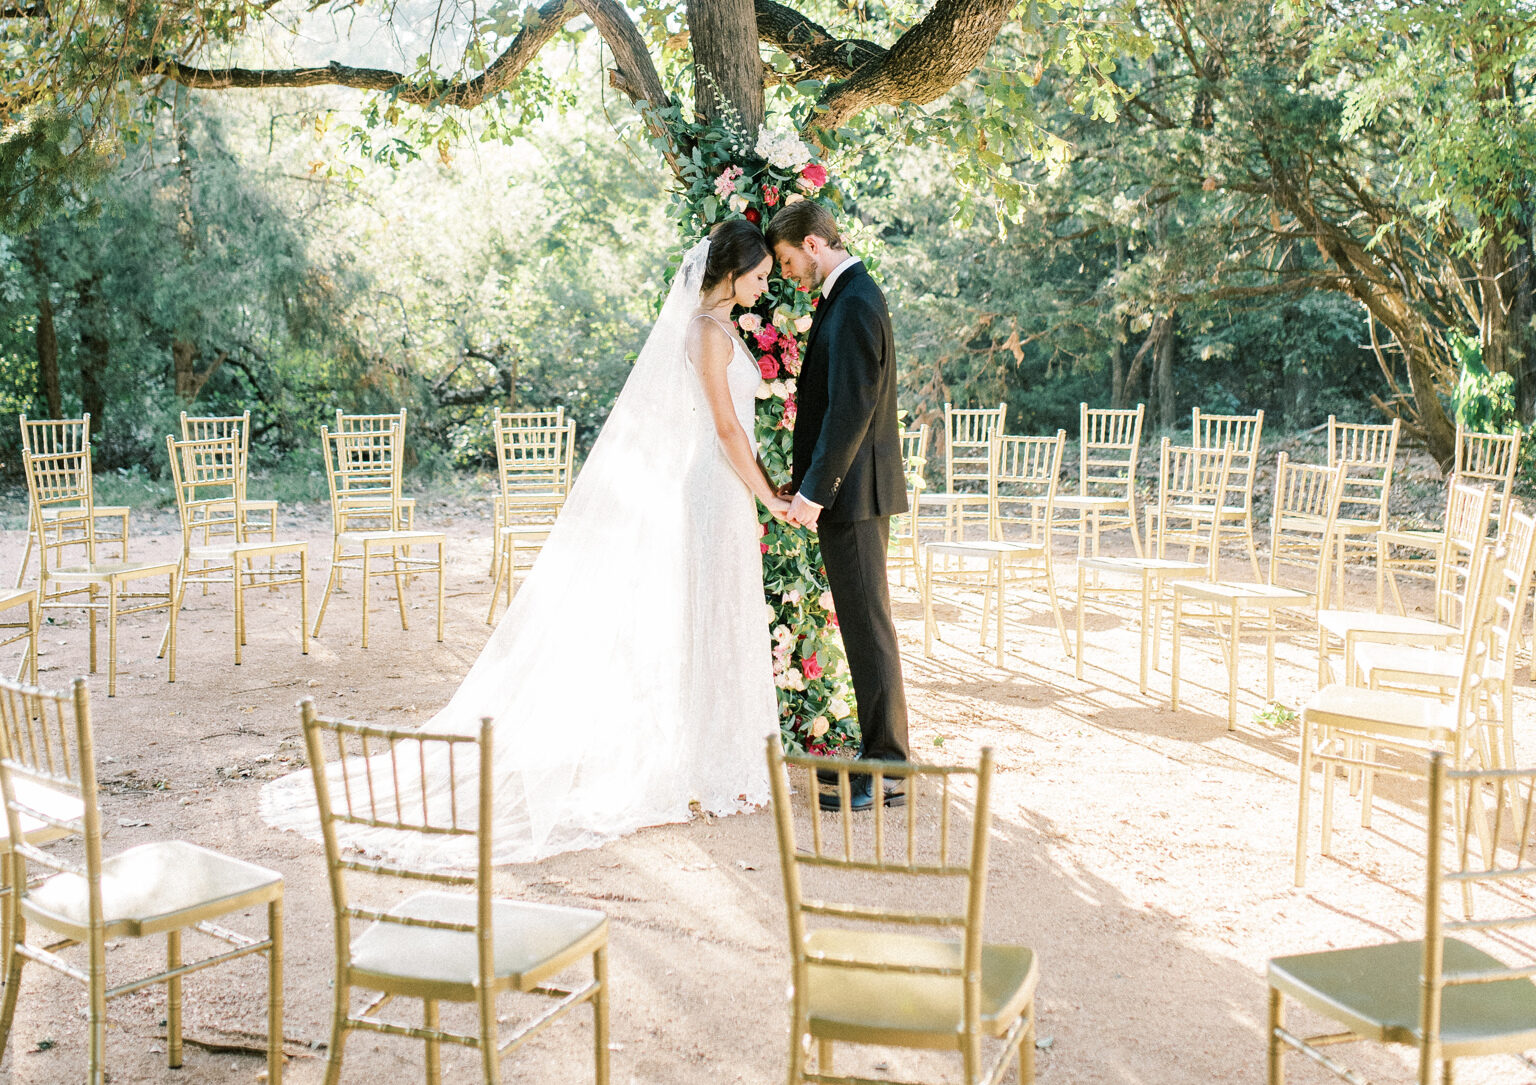 Bride and Groom in one of the outdoor ceremony sites (garden wedding) at Thistle Hill Estate in Whitesboro, TX.